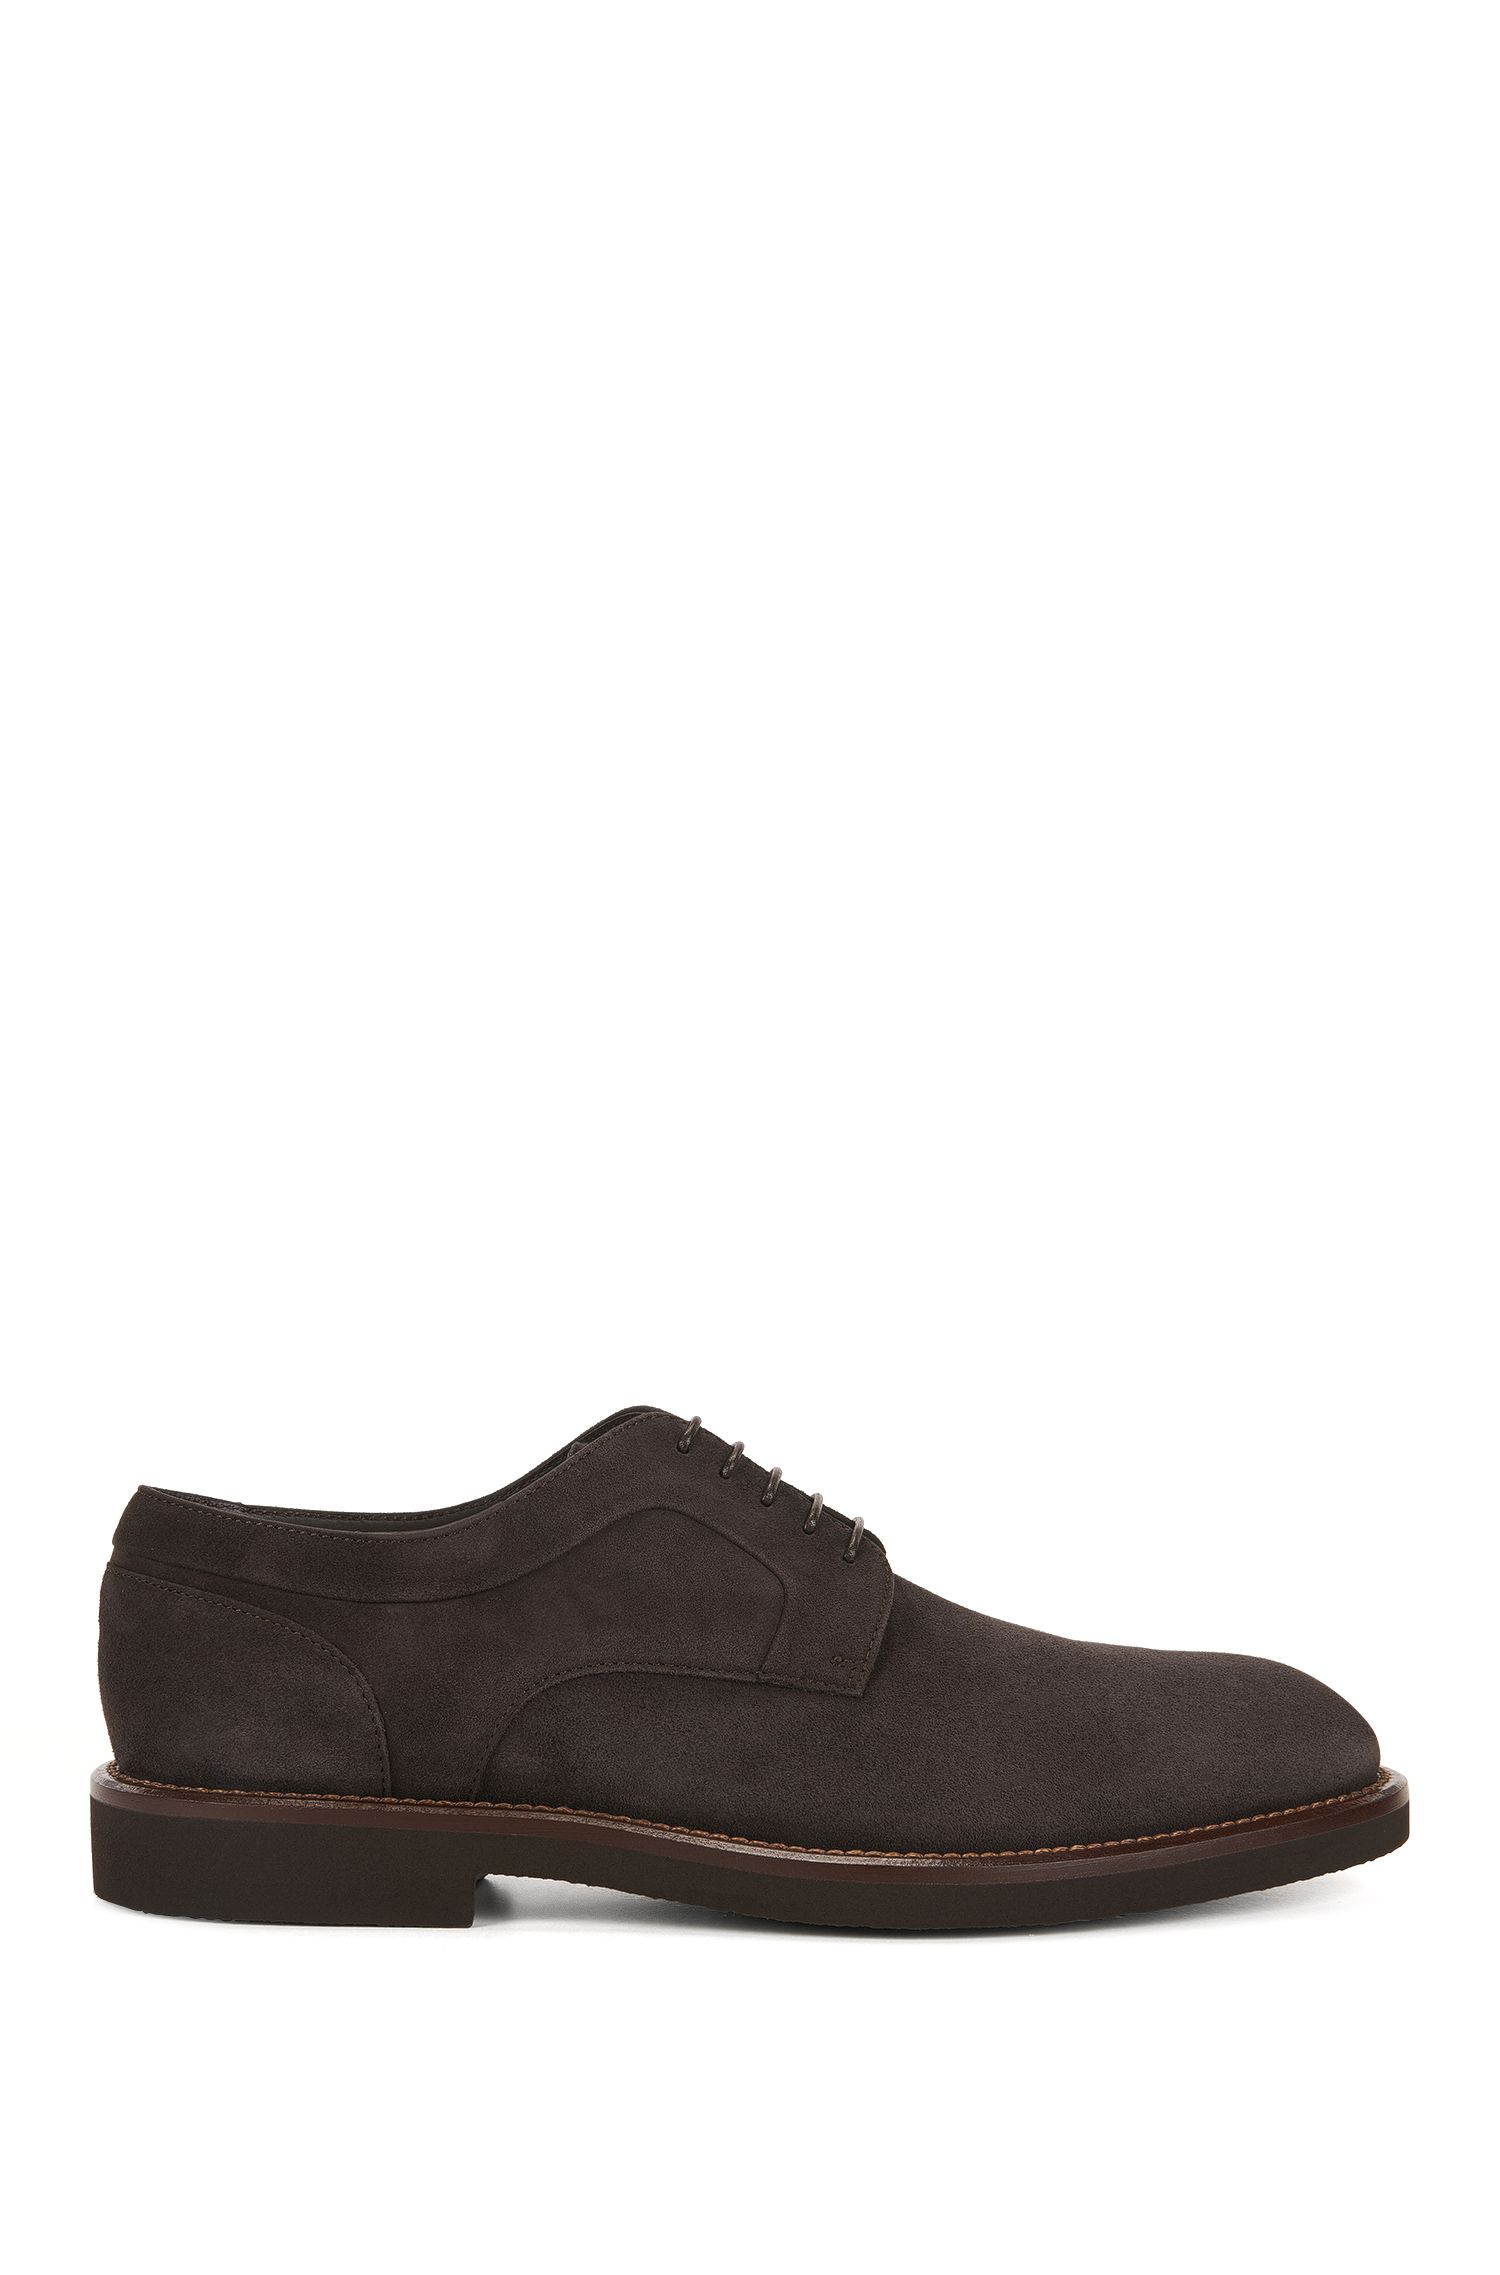 Lace-up Derby shoes in suede